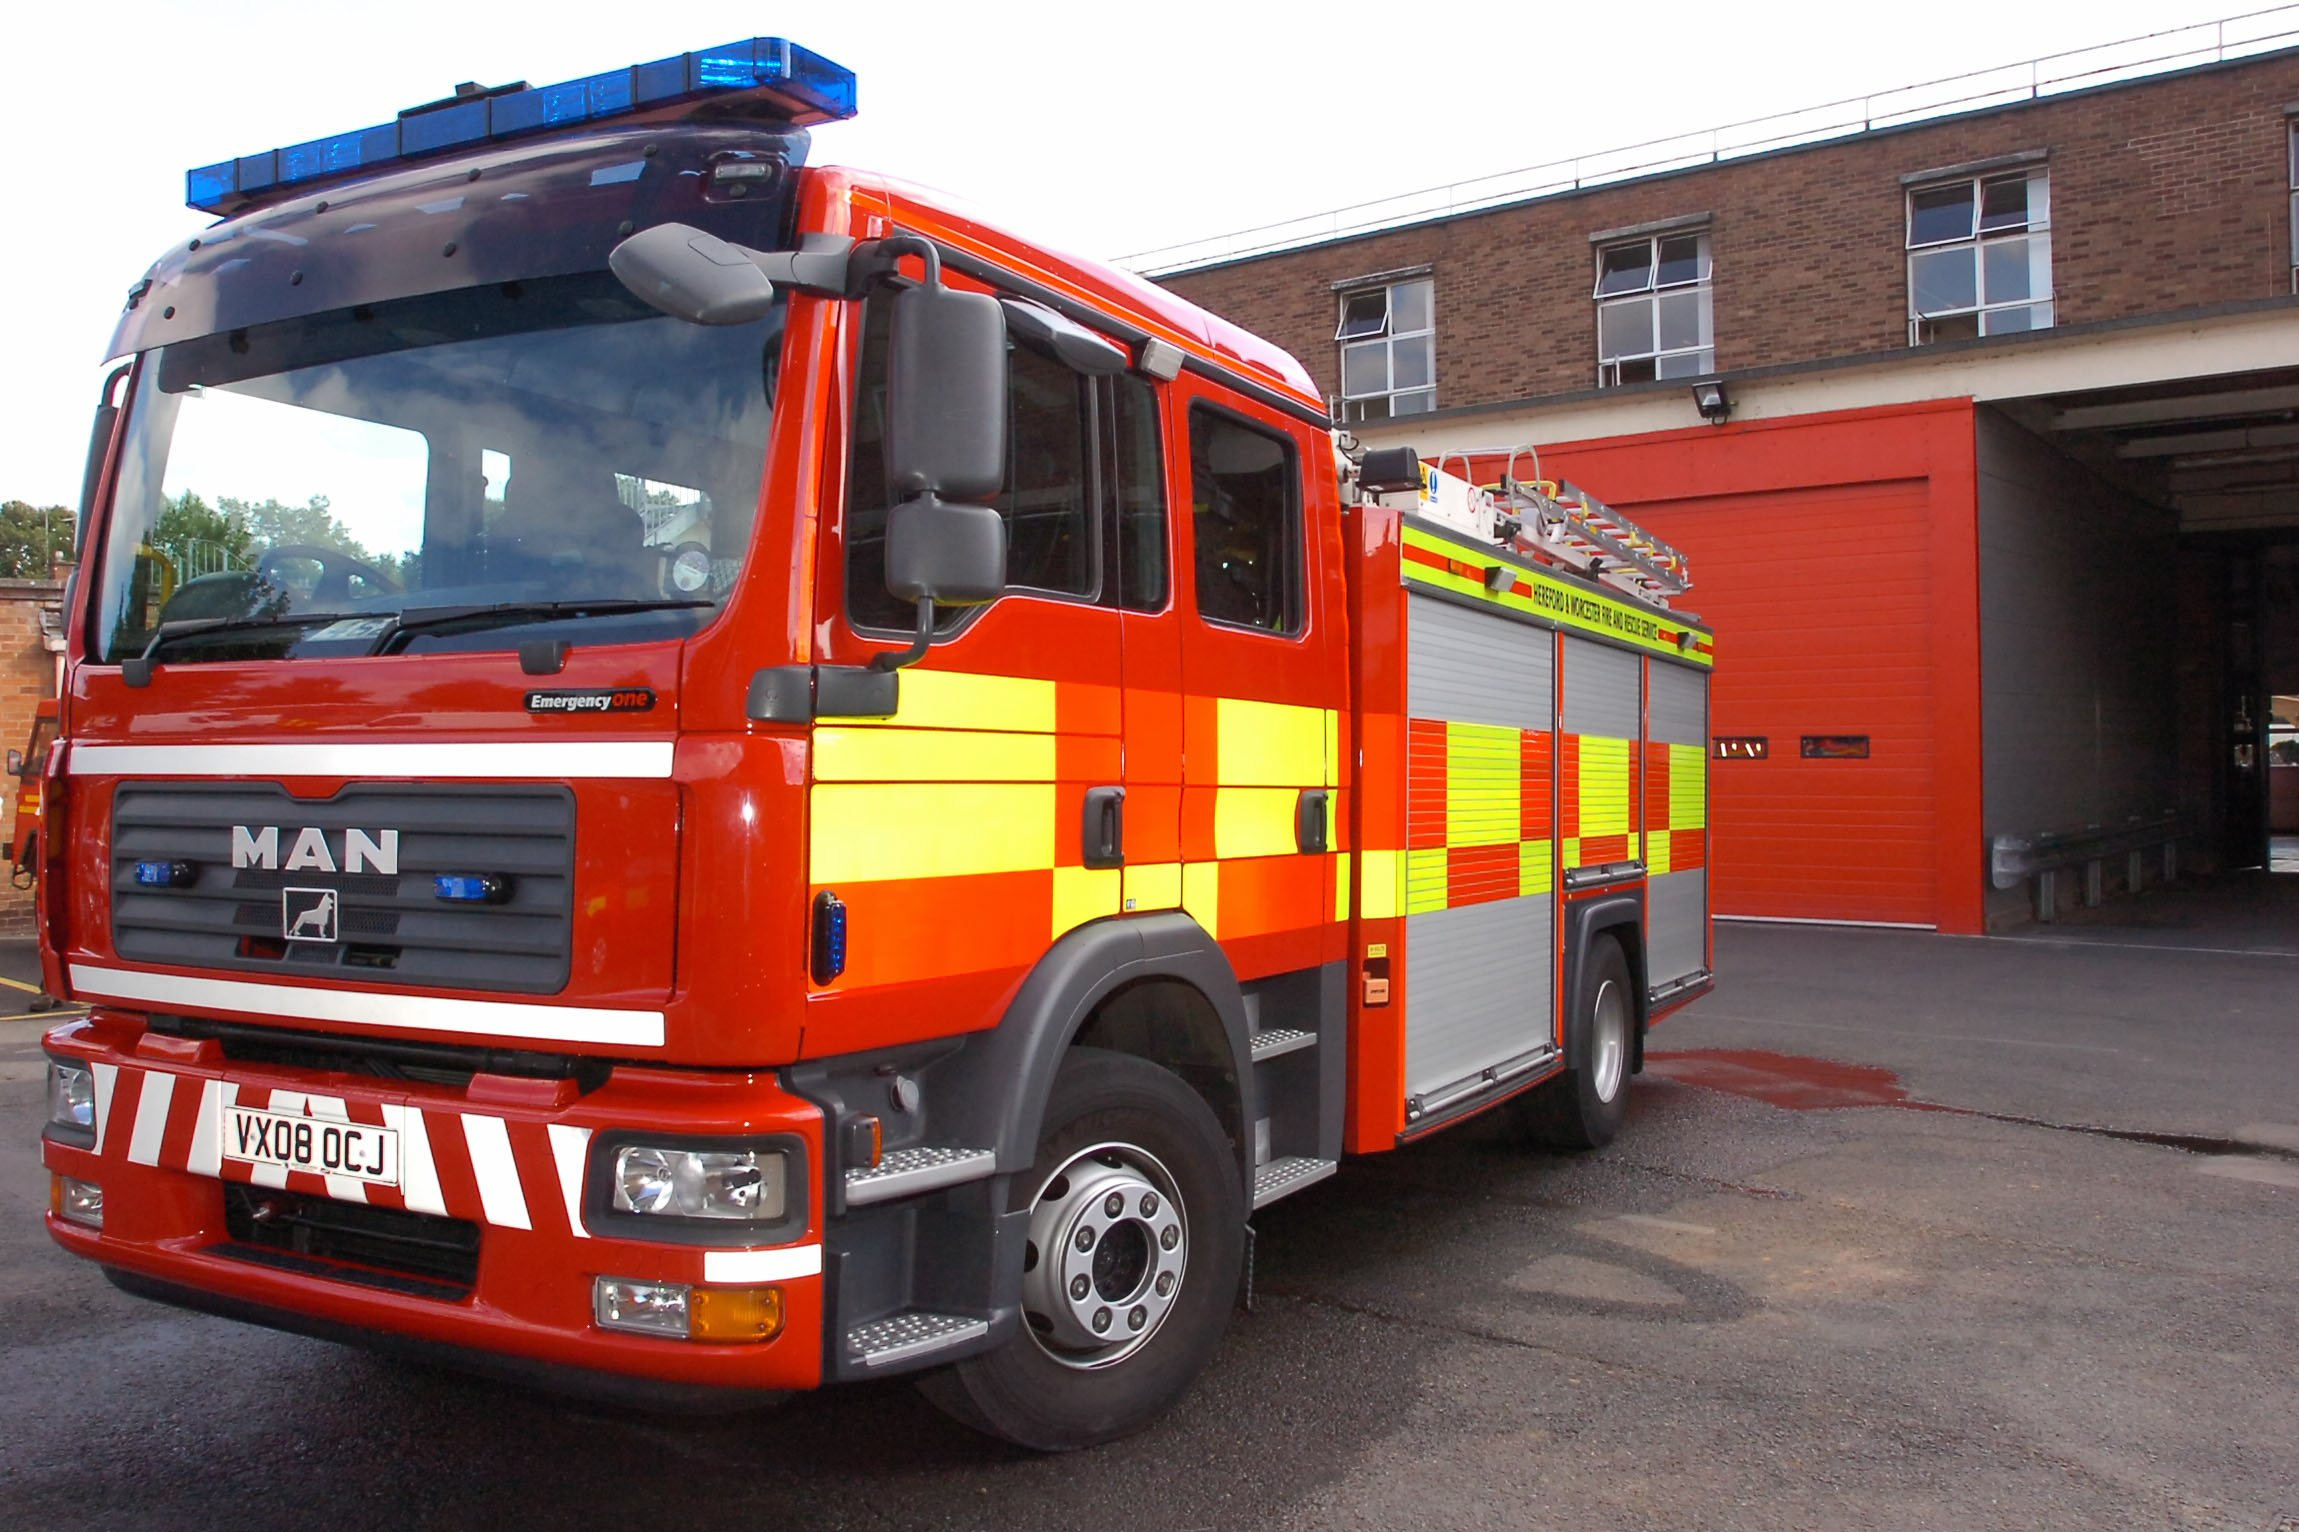 Firefighters called to blaze in Blackburn